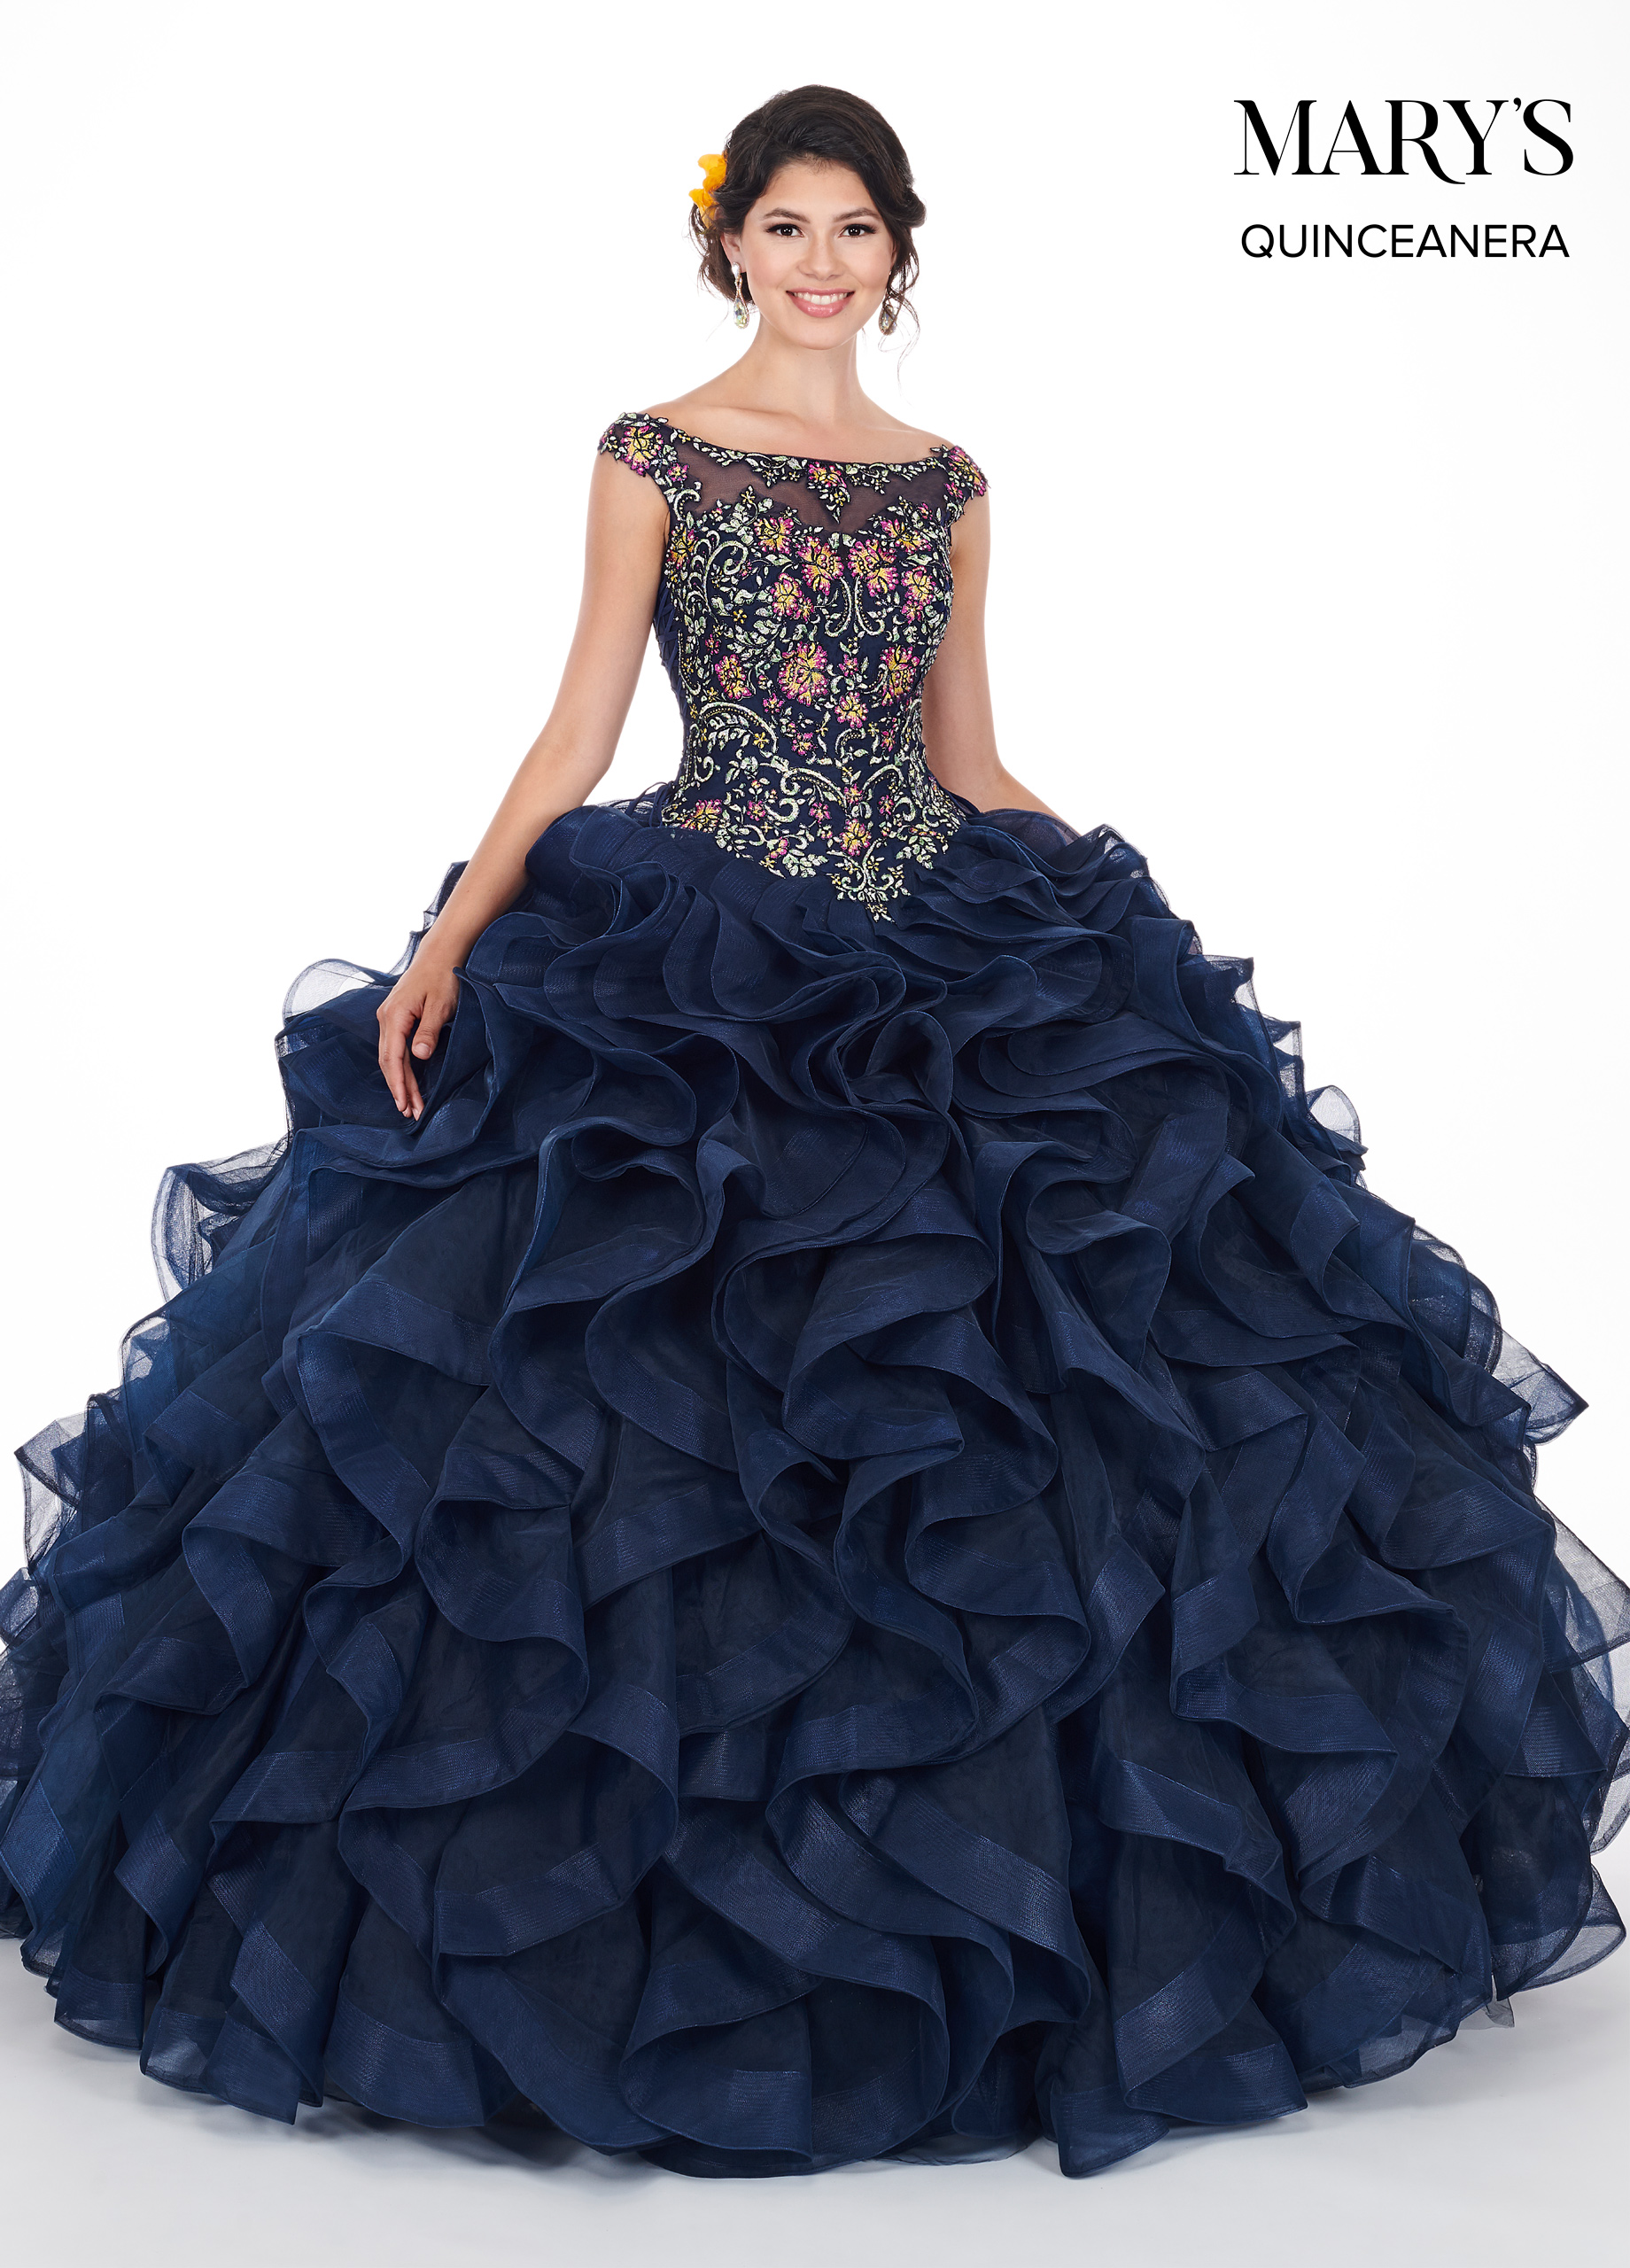 Marys Quinceanera Dresses Style Mq1037 In Periwinkle